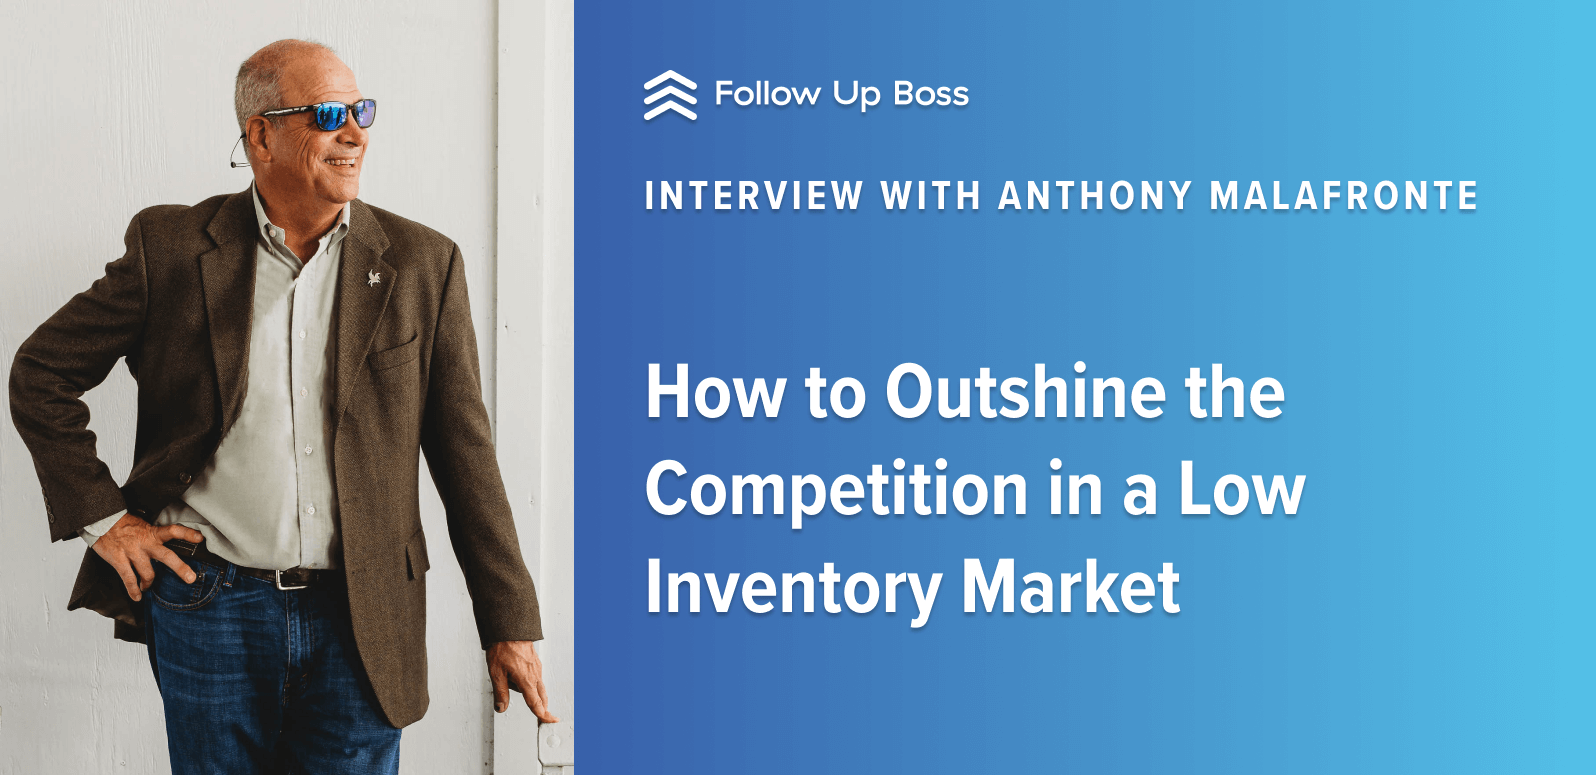 How to Outshine the Competition in a Low Inventory Market — Interview with Anthony Malafronte